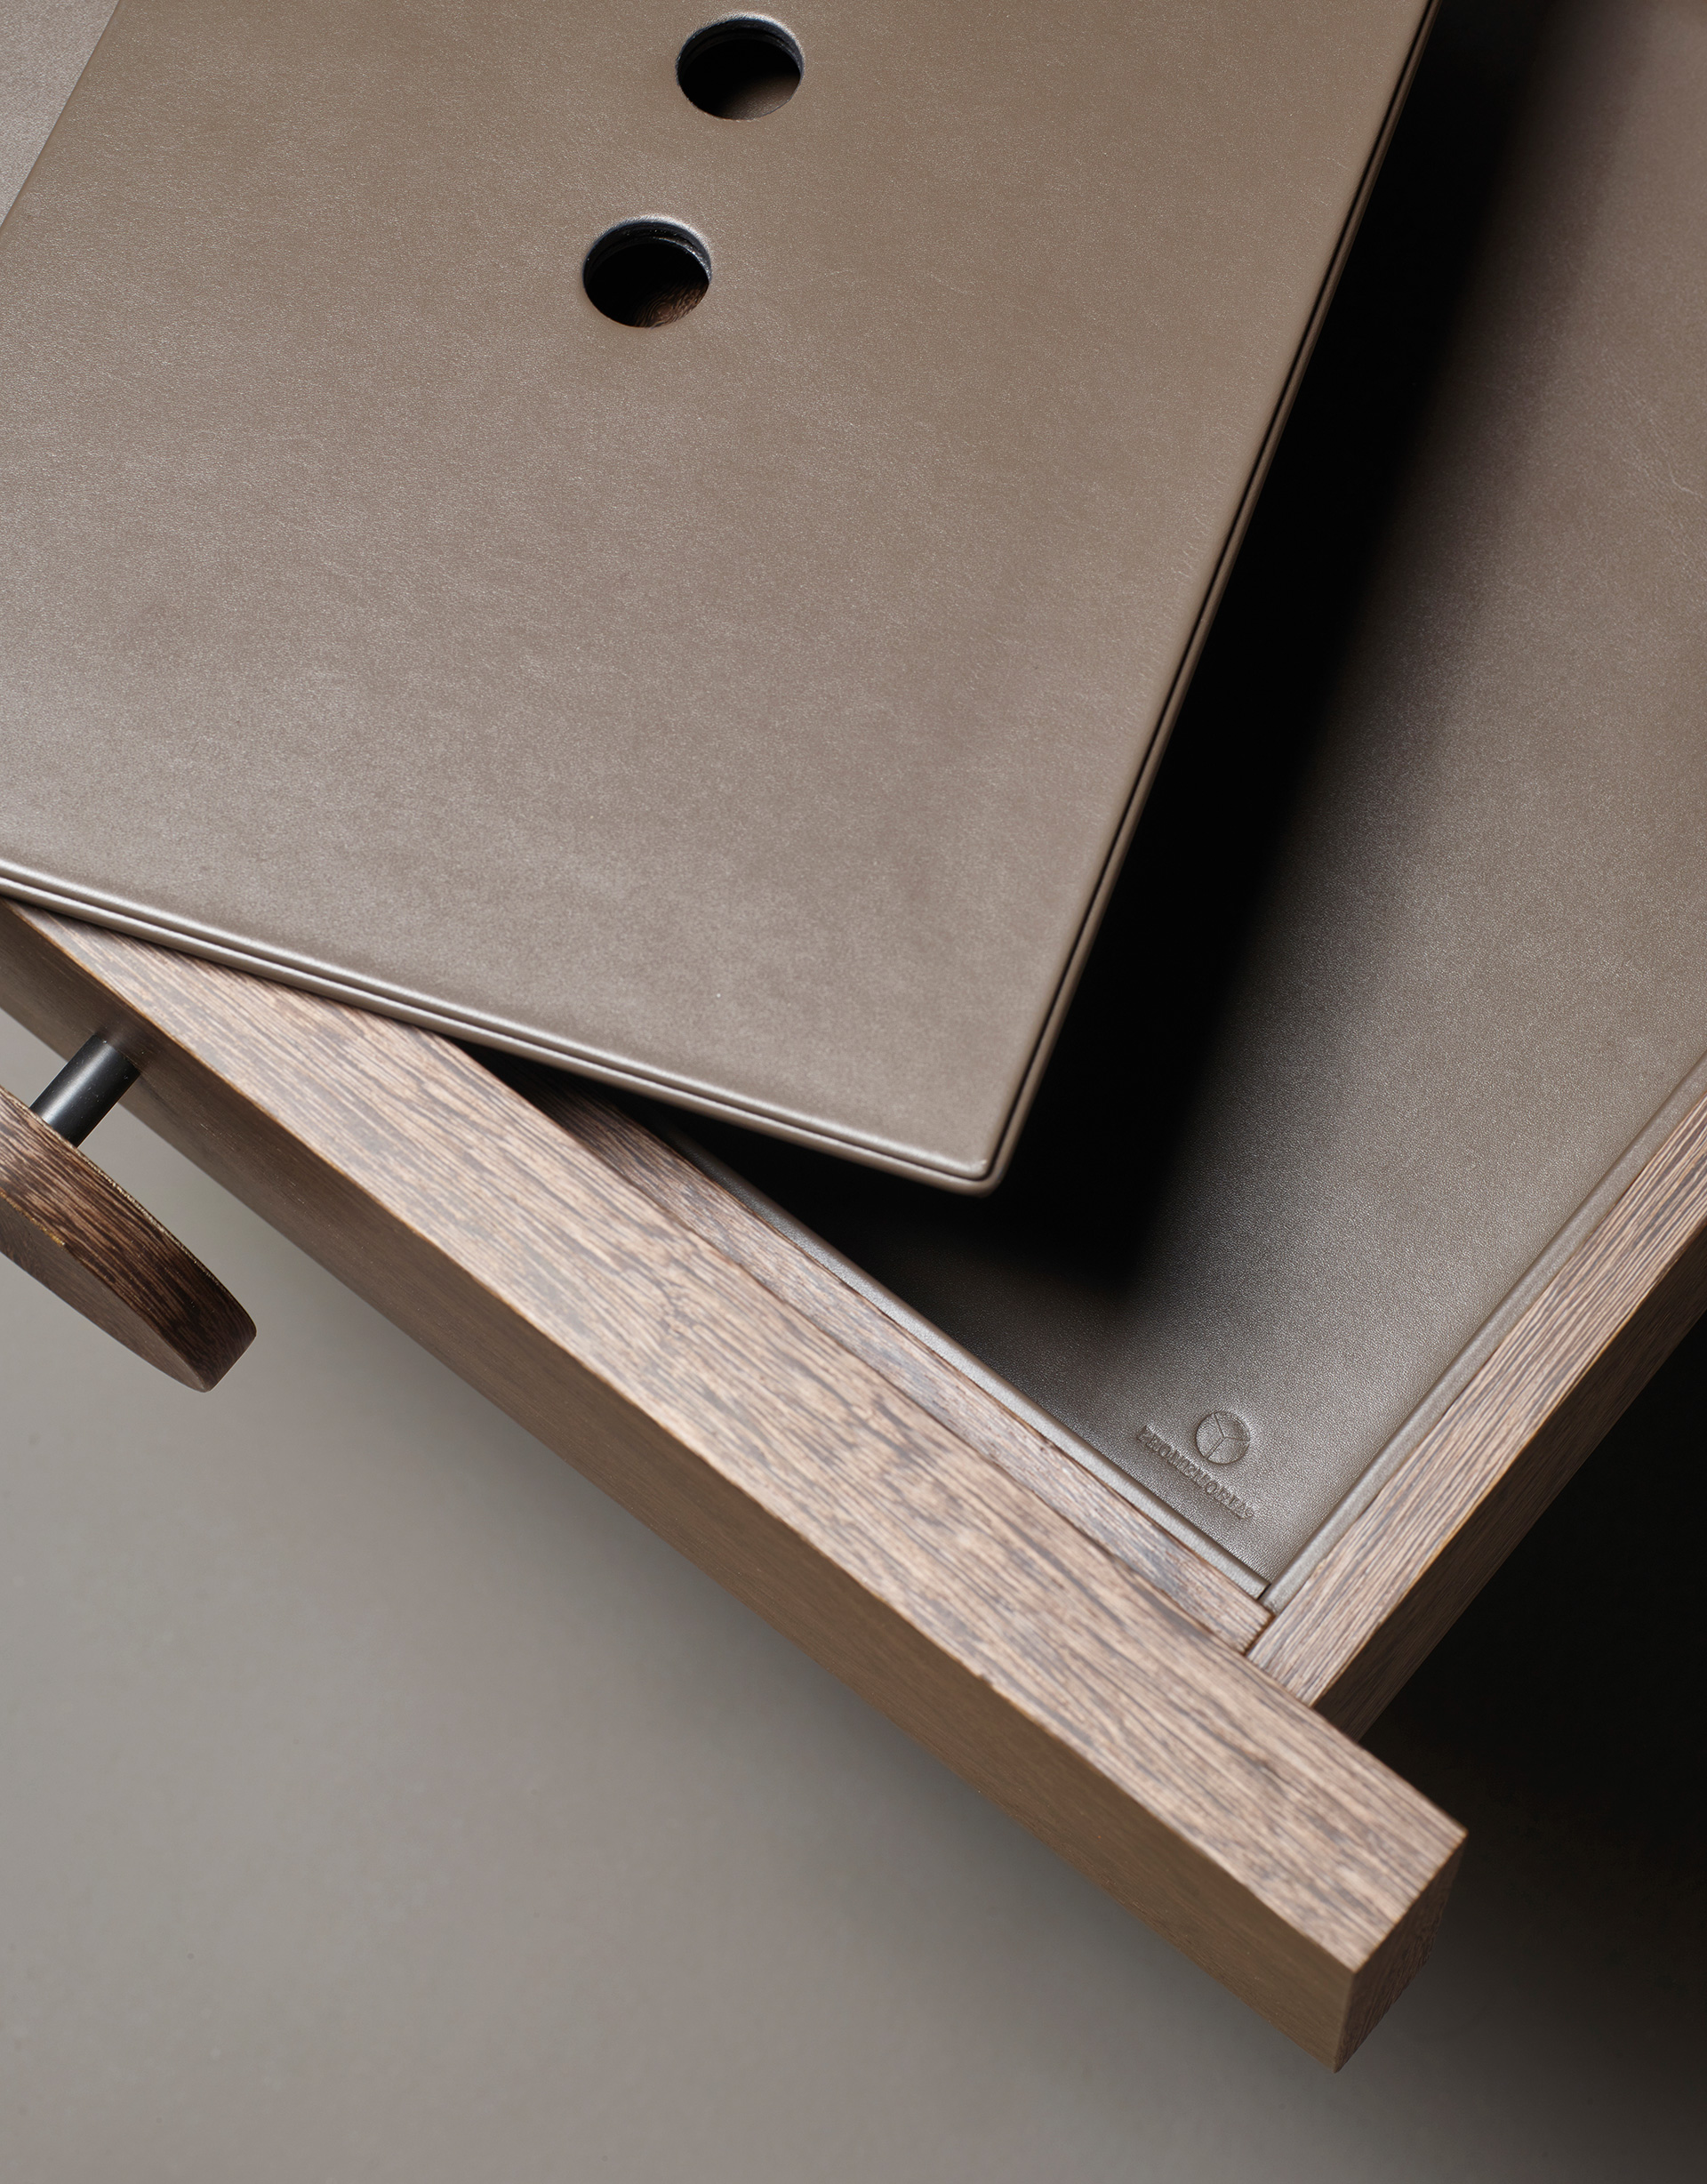 Drawers' detail of Dagoberto, a wooden bedside table with wheels and drawers from the Promemoria's catalogue | Promemoria